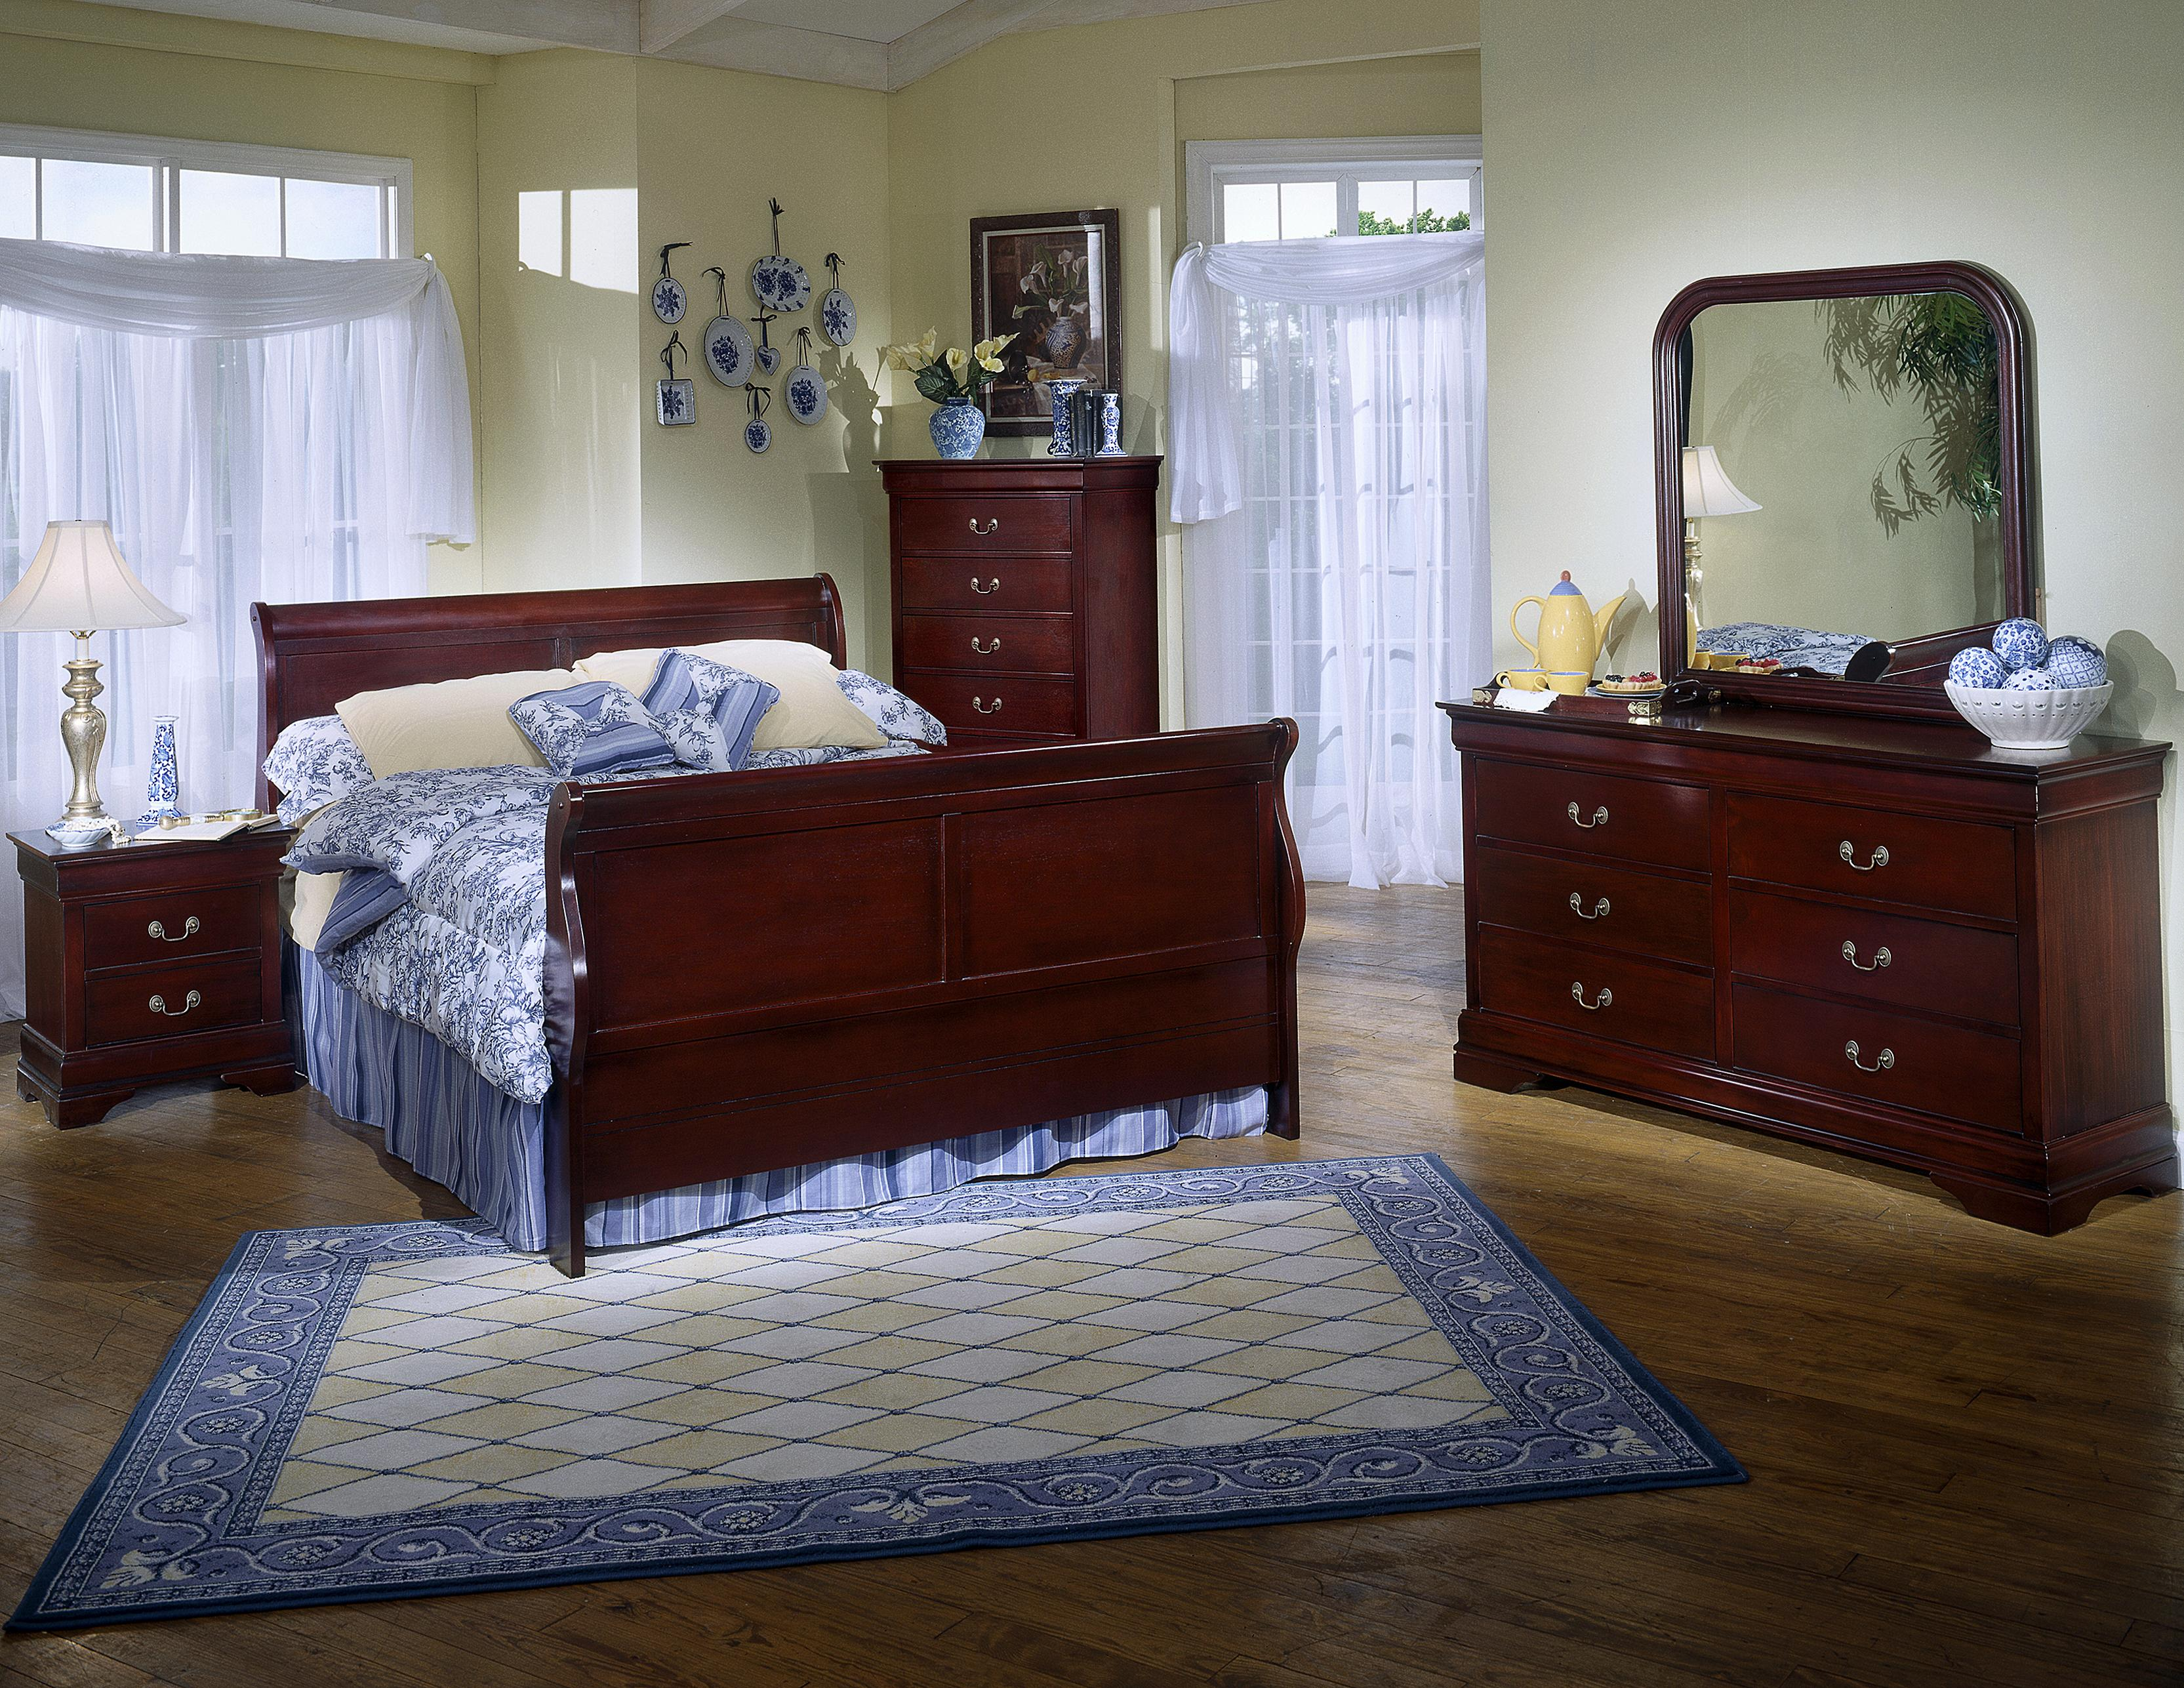 Lifestyle Bedroom Furniture Lifestyle 5933 6 Drawer Dresser Rounded Square Mirror Combo